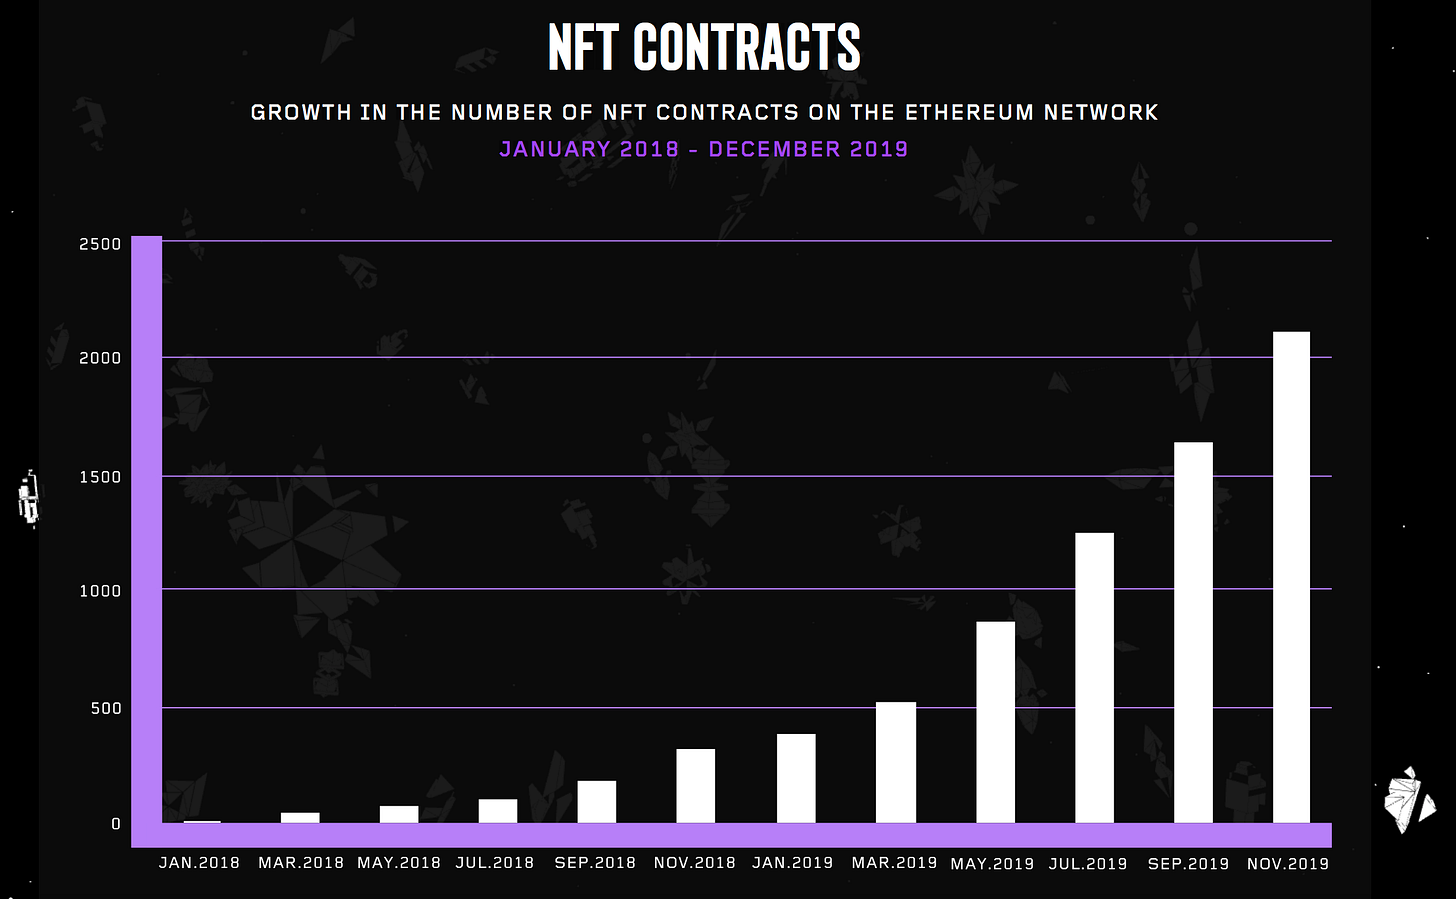 NFT contracts